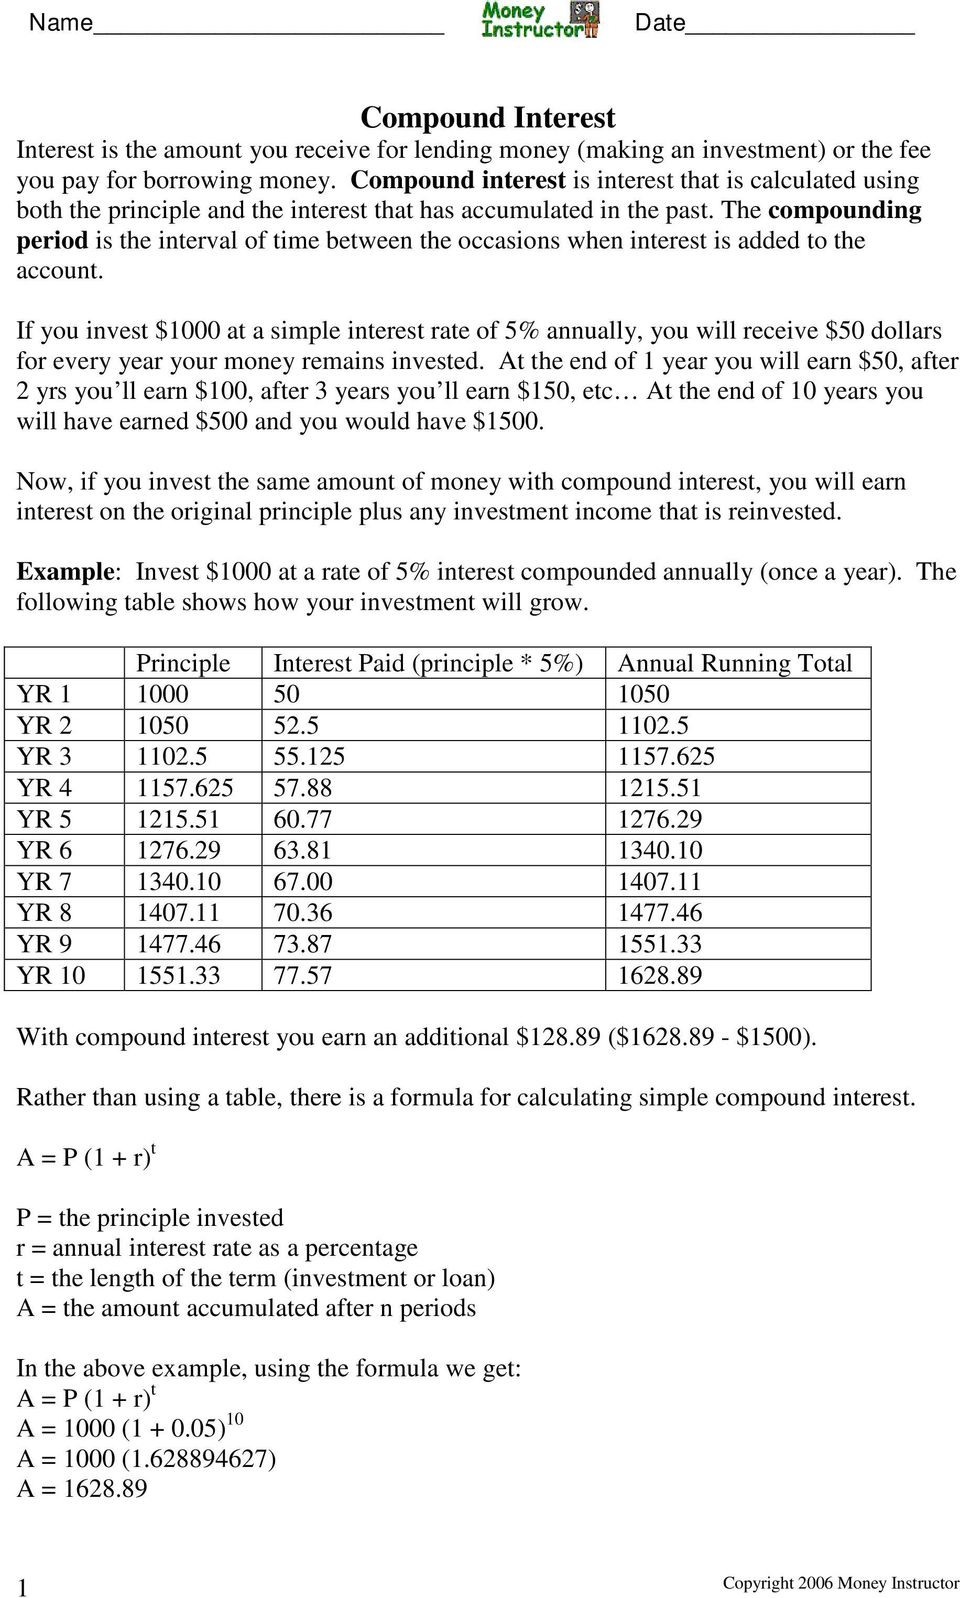 Continuous Compound Interest Worksheet With Answers — db ...